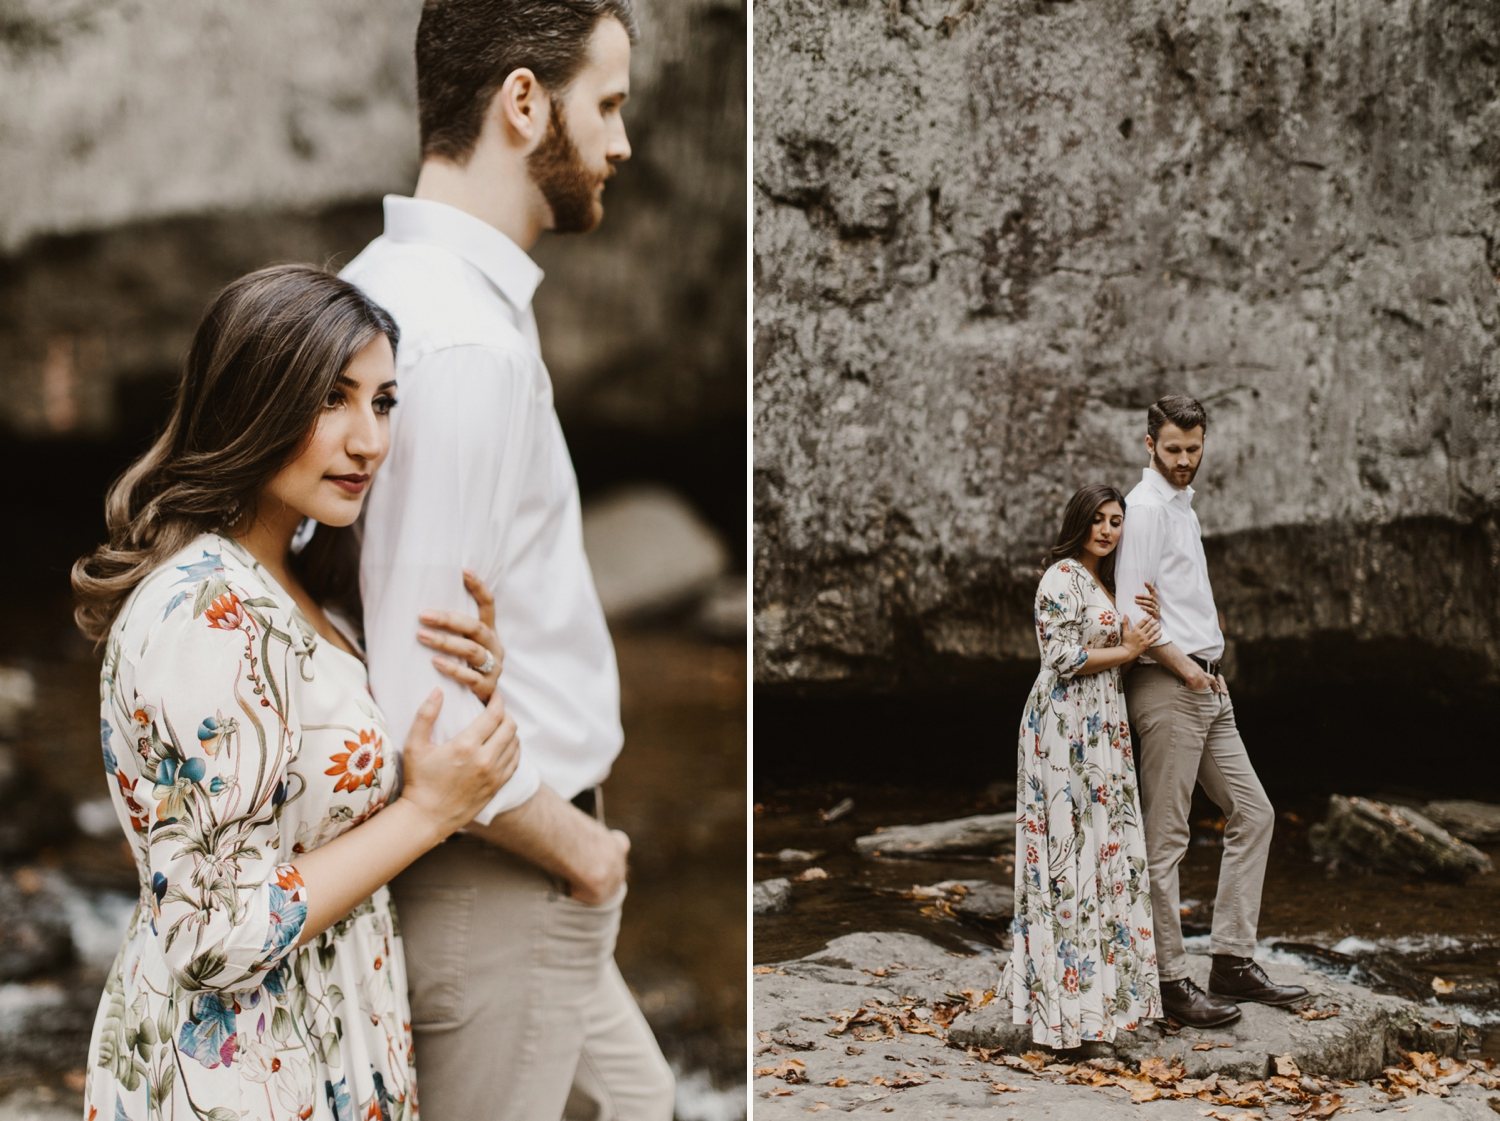 sundas-and-scotts-engagement-77_baltimore-washington-d-c-waterfall-kilgore-engagement-session-maxi-dress-earthy-maryland-wedding-photographer-kate-ann-photography-phot